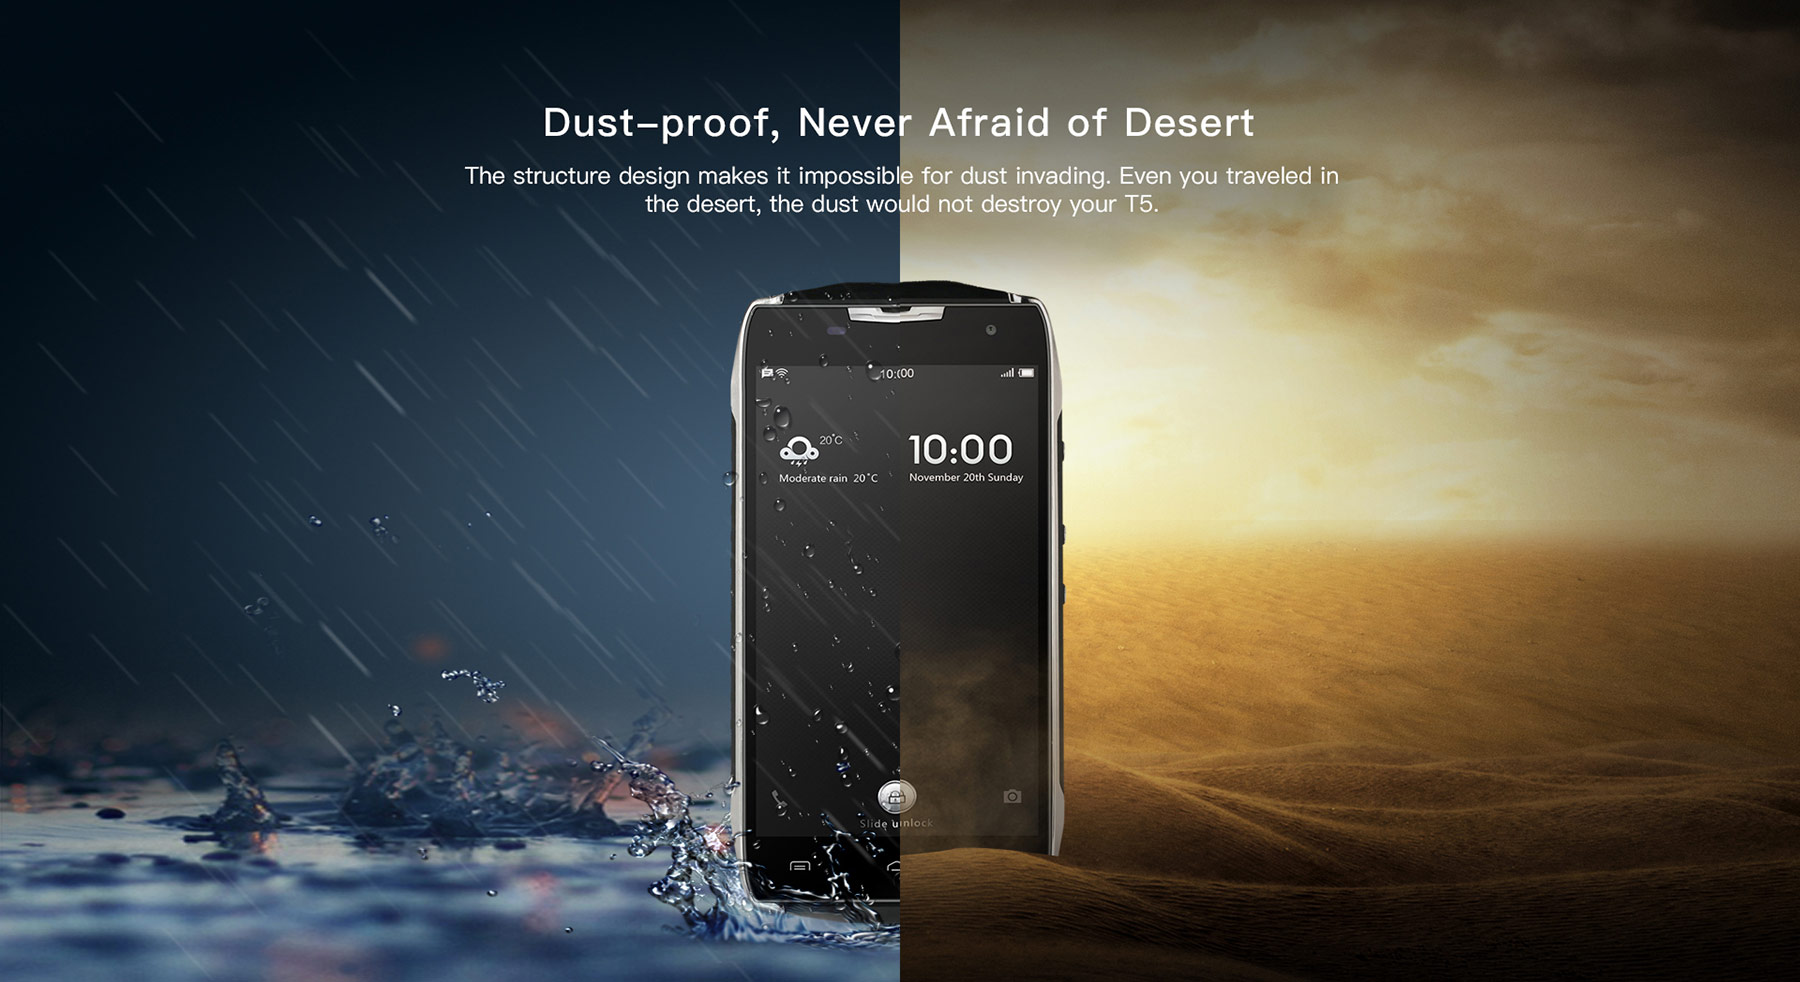 Doogee T5 Android 6.0 5.0 inch 4G Smartphone MTK6753 Octa Core 1.3GHz 3GB RAM 32GB ROM Waterproof Dustproof 13.0MP Rear Camera GPS